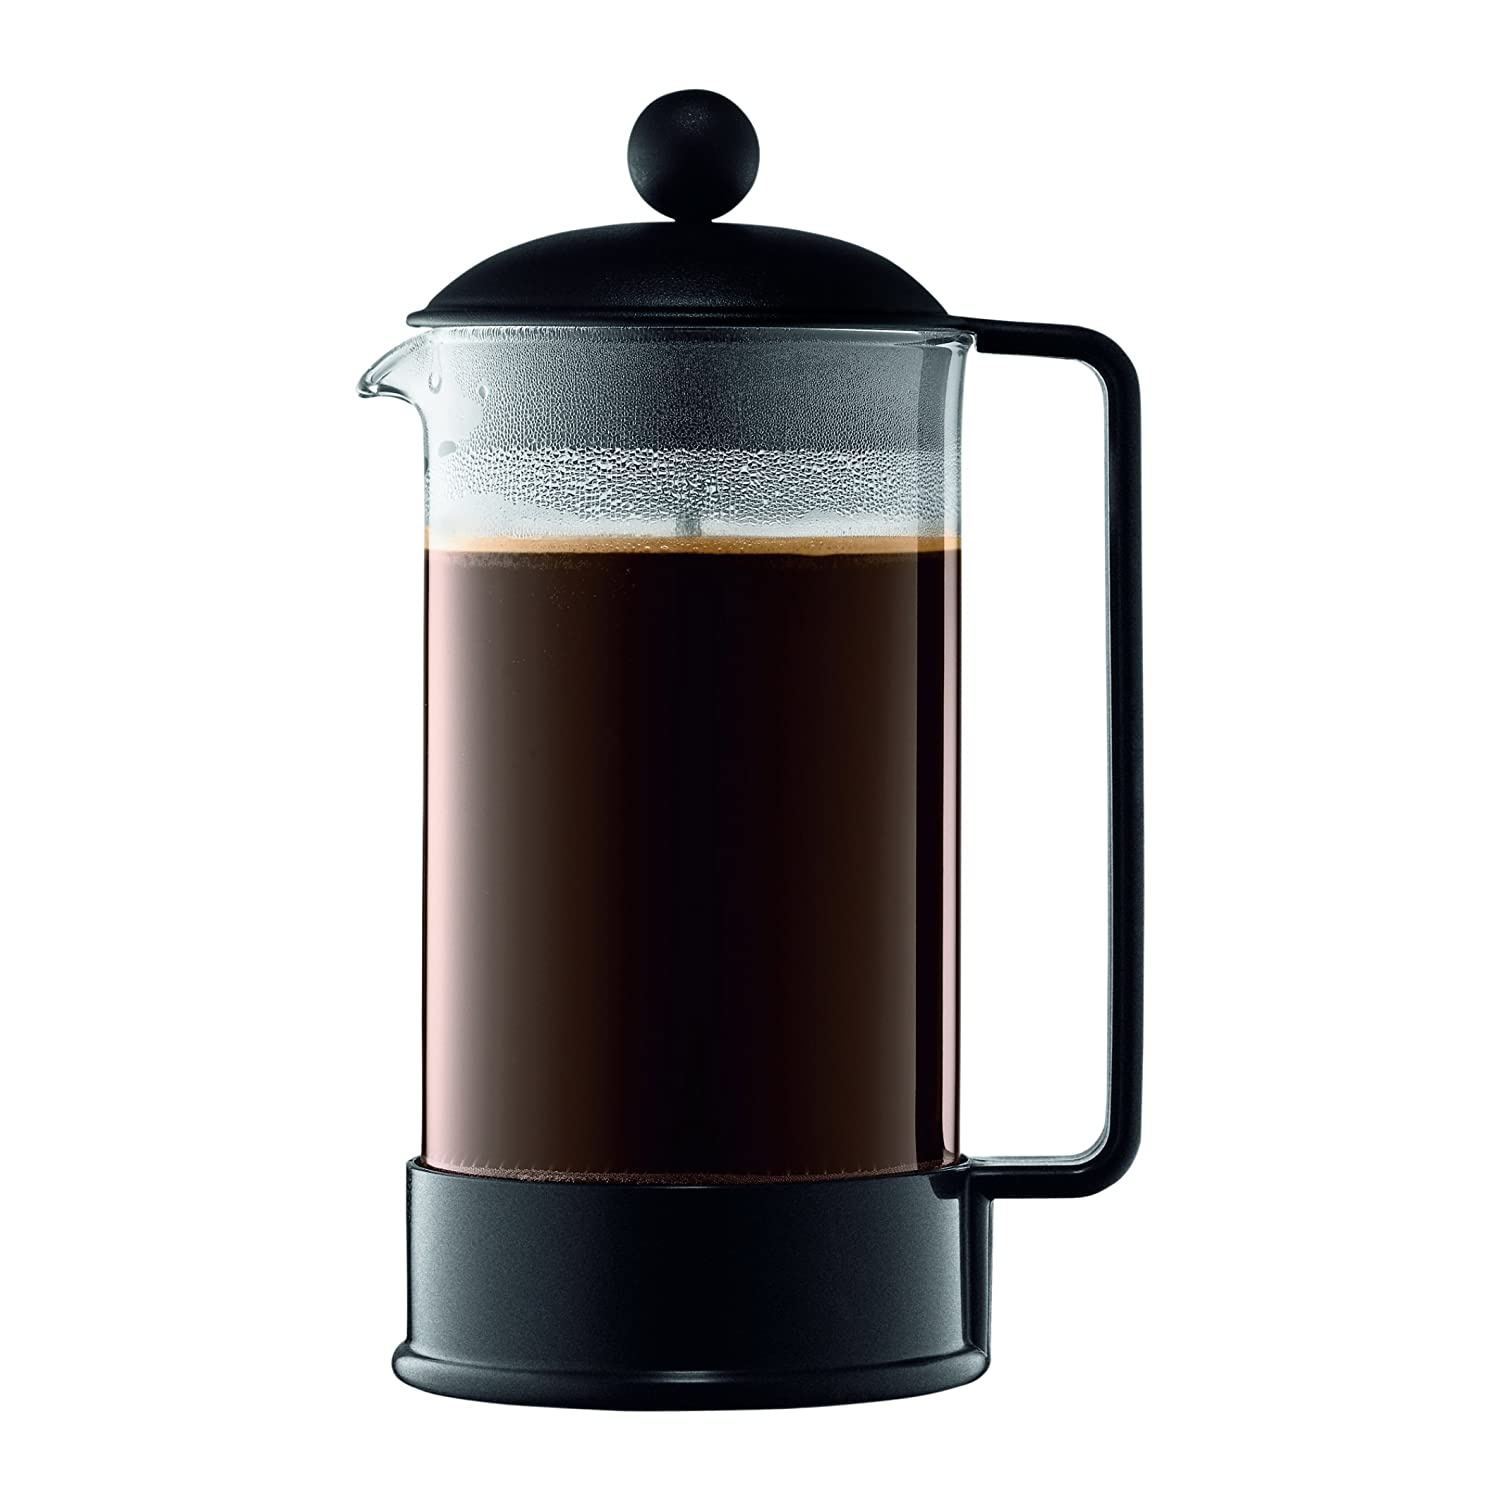 best french press : bodum 1548-01us brazil french press coffee and tea maker